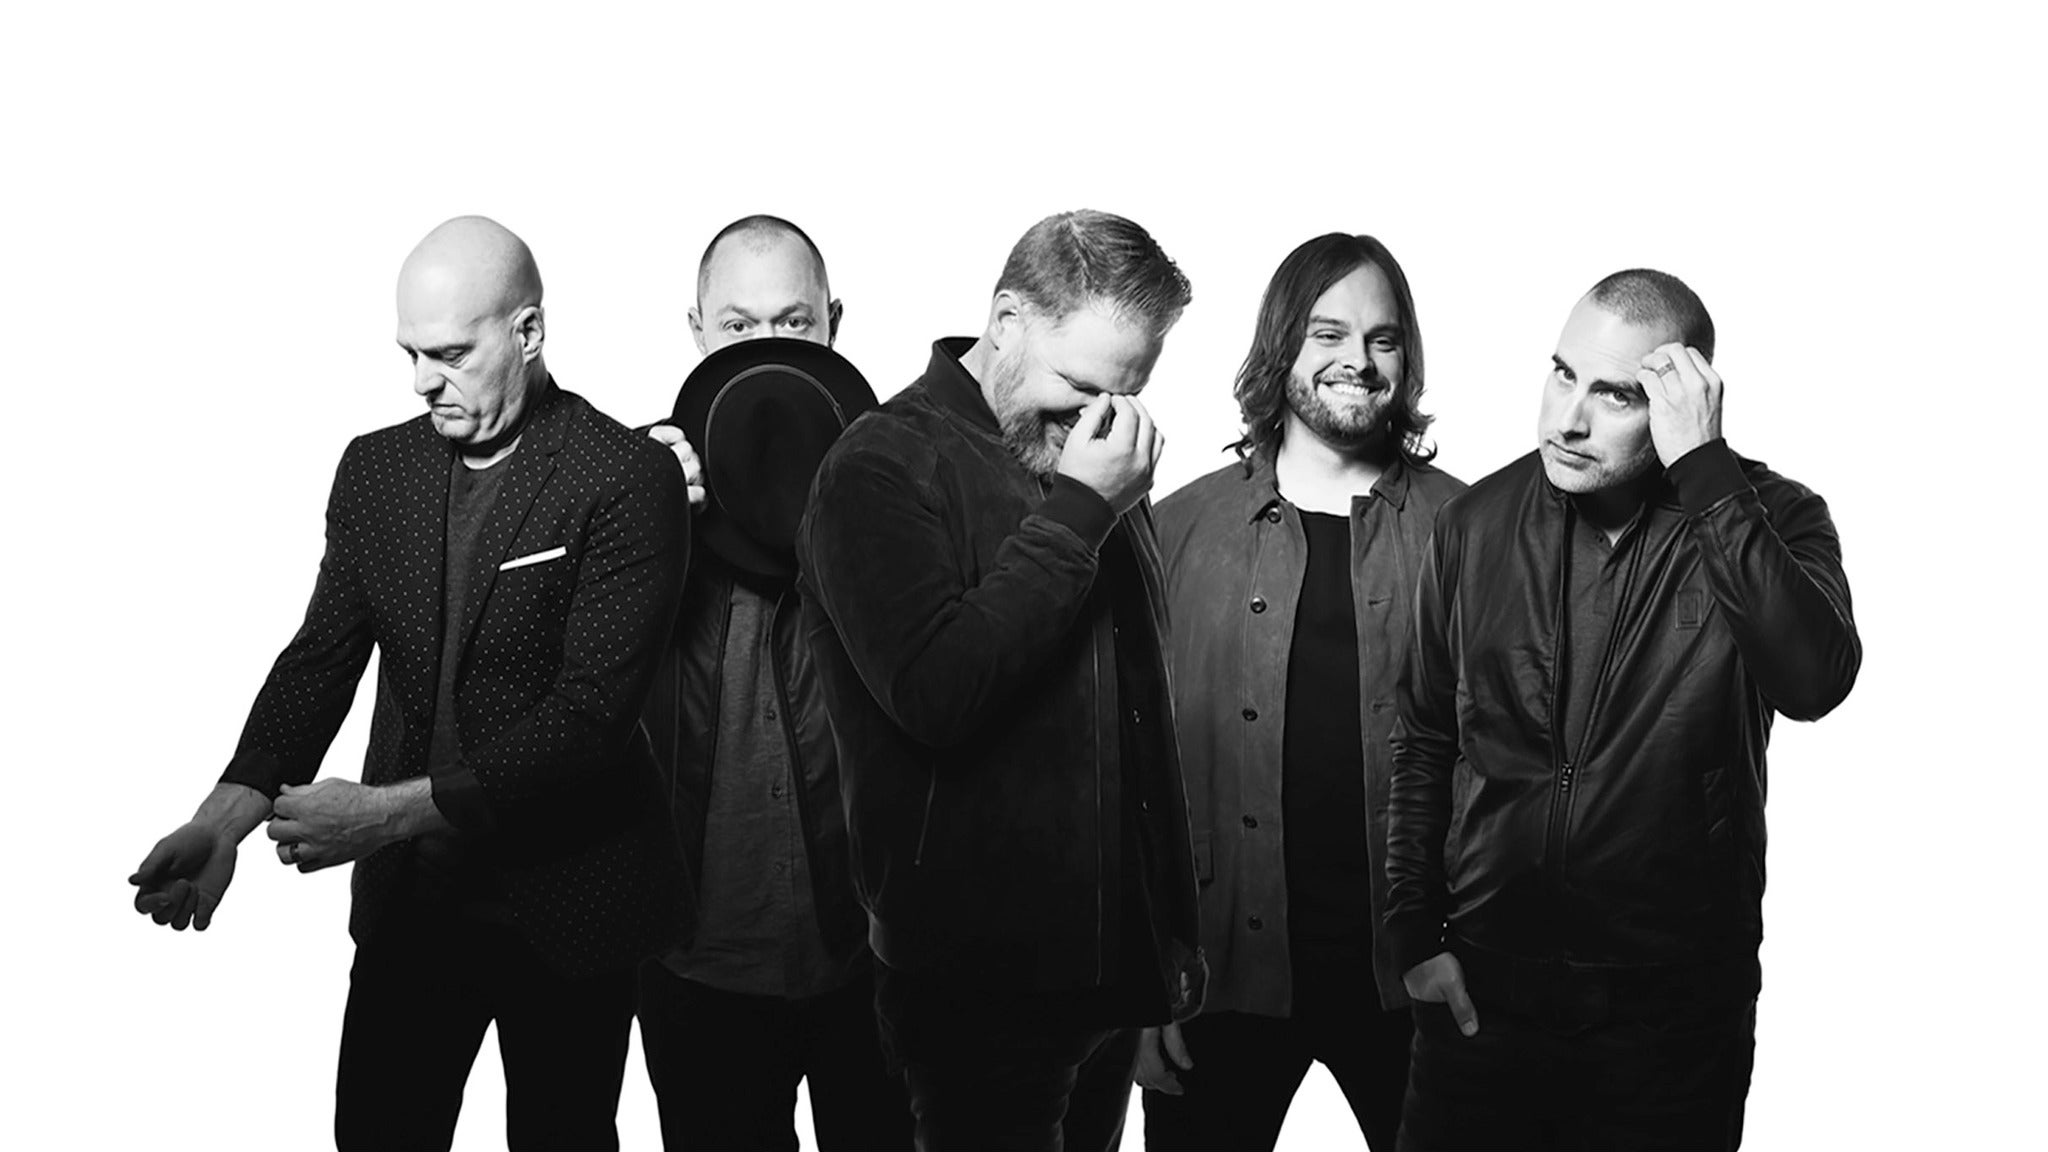 MercyMe at Bob Carpenter Center at University of Delaware